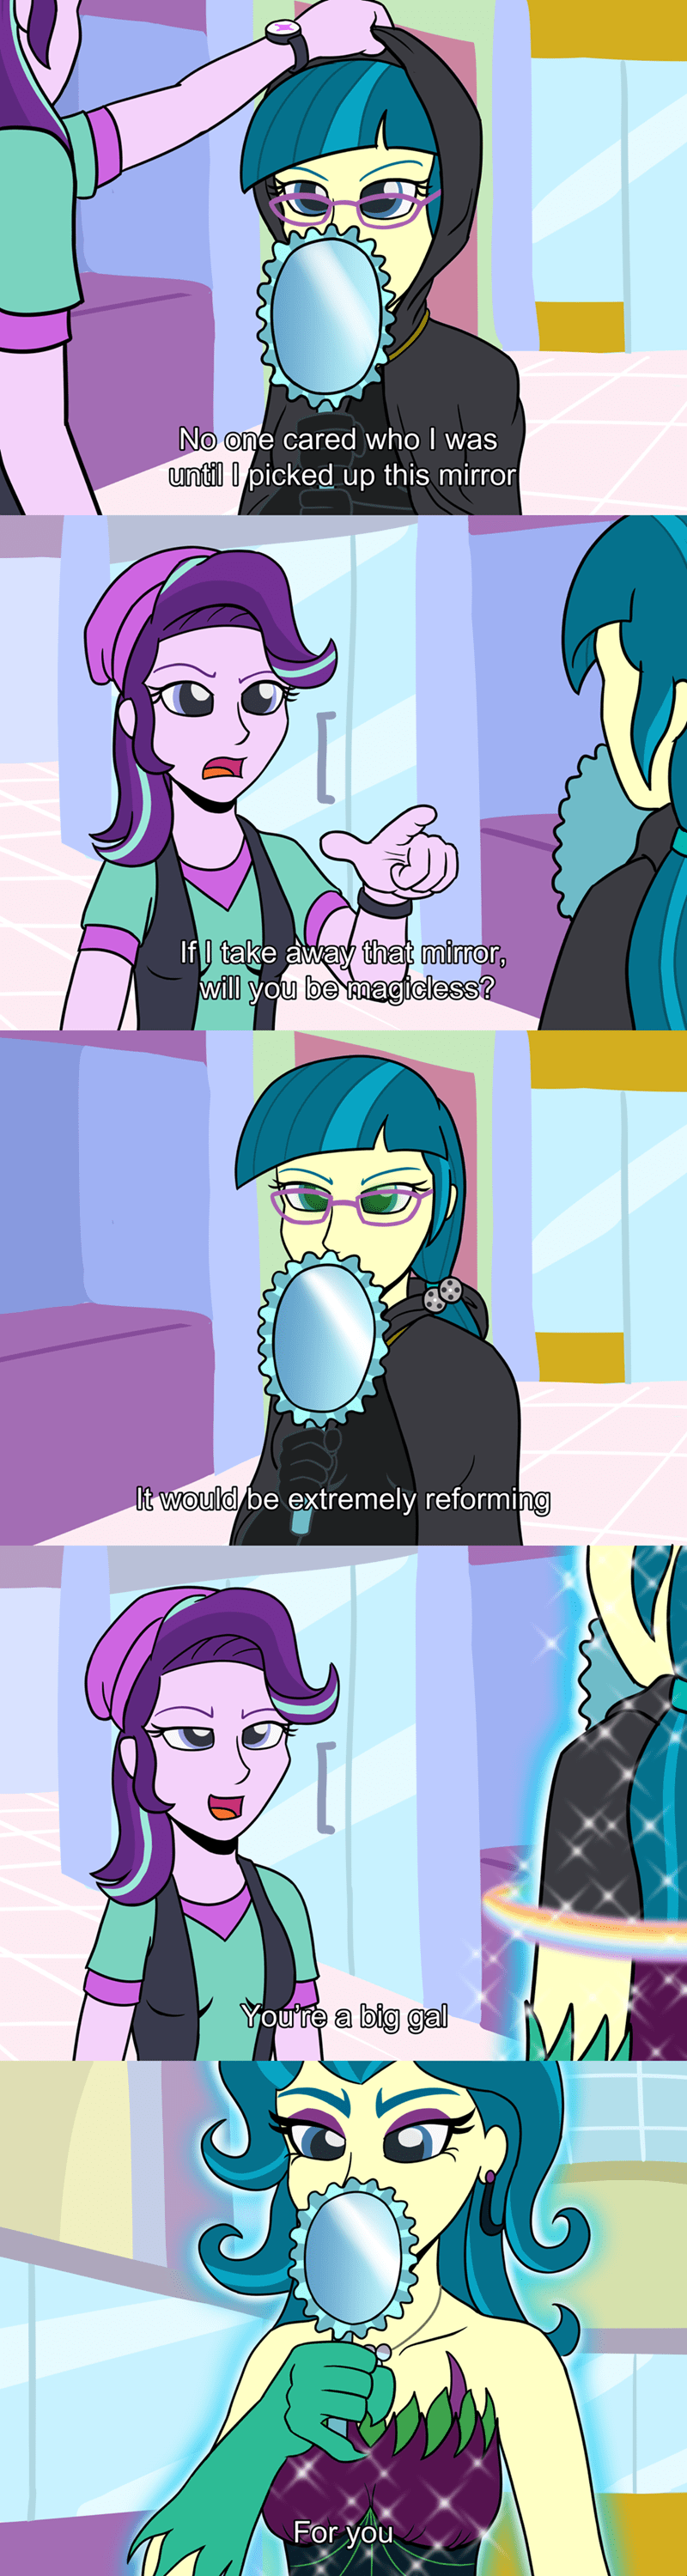 equestria girls the dark knight rises starlight glimmer baneposting m kogwheel mirror magic ponify comic juniper montage - 9053124096